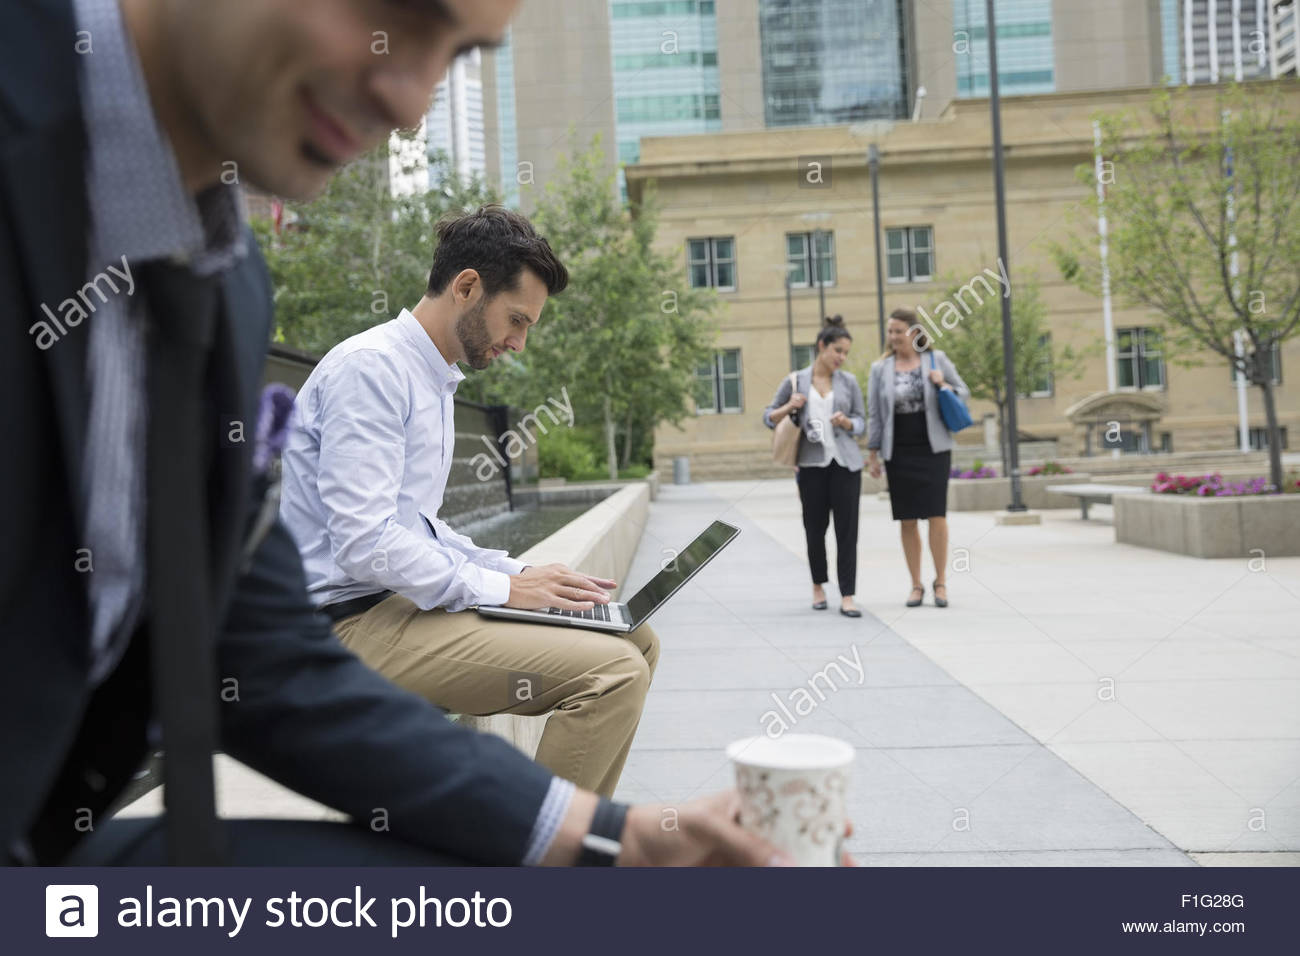 Business people in urban park - Stock Image